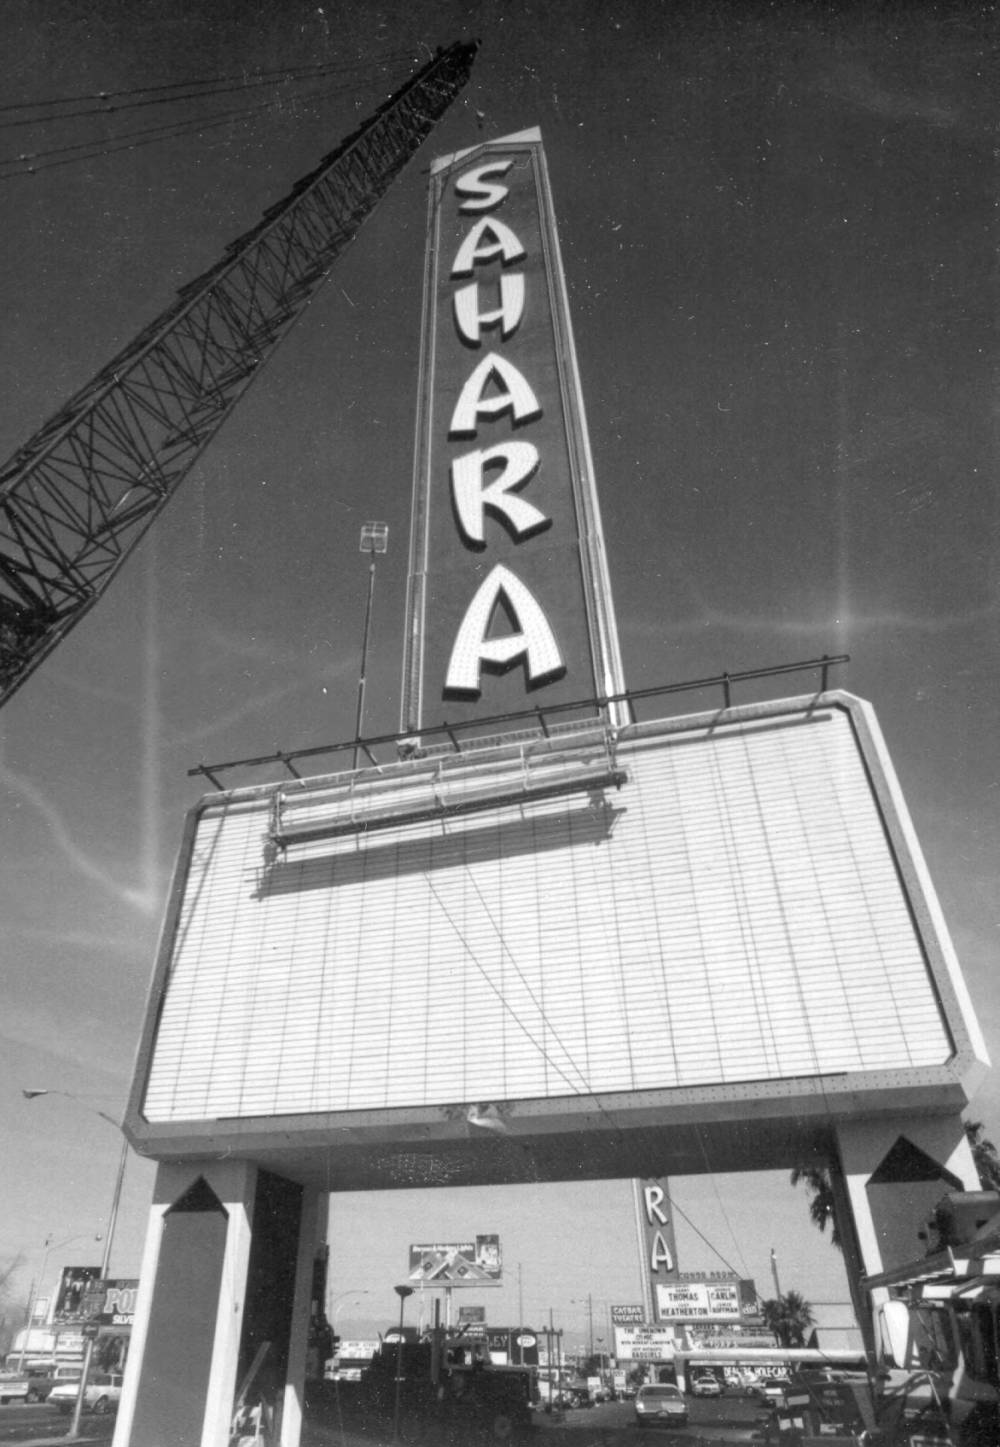 Photograph of assembly of the neon sign in front of the Sahara Hotel and Casino (Las Vegas), 1980